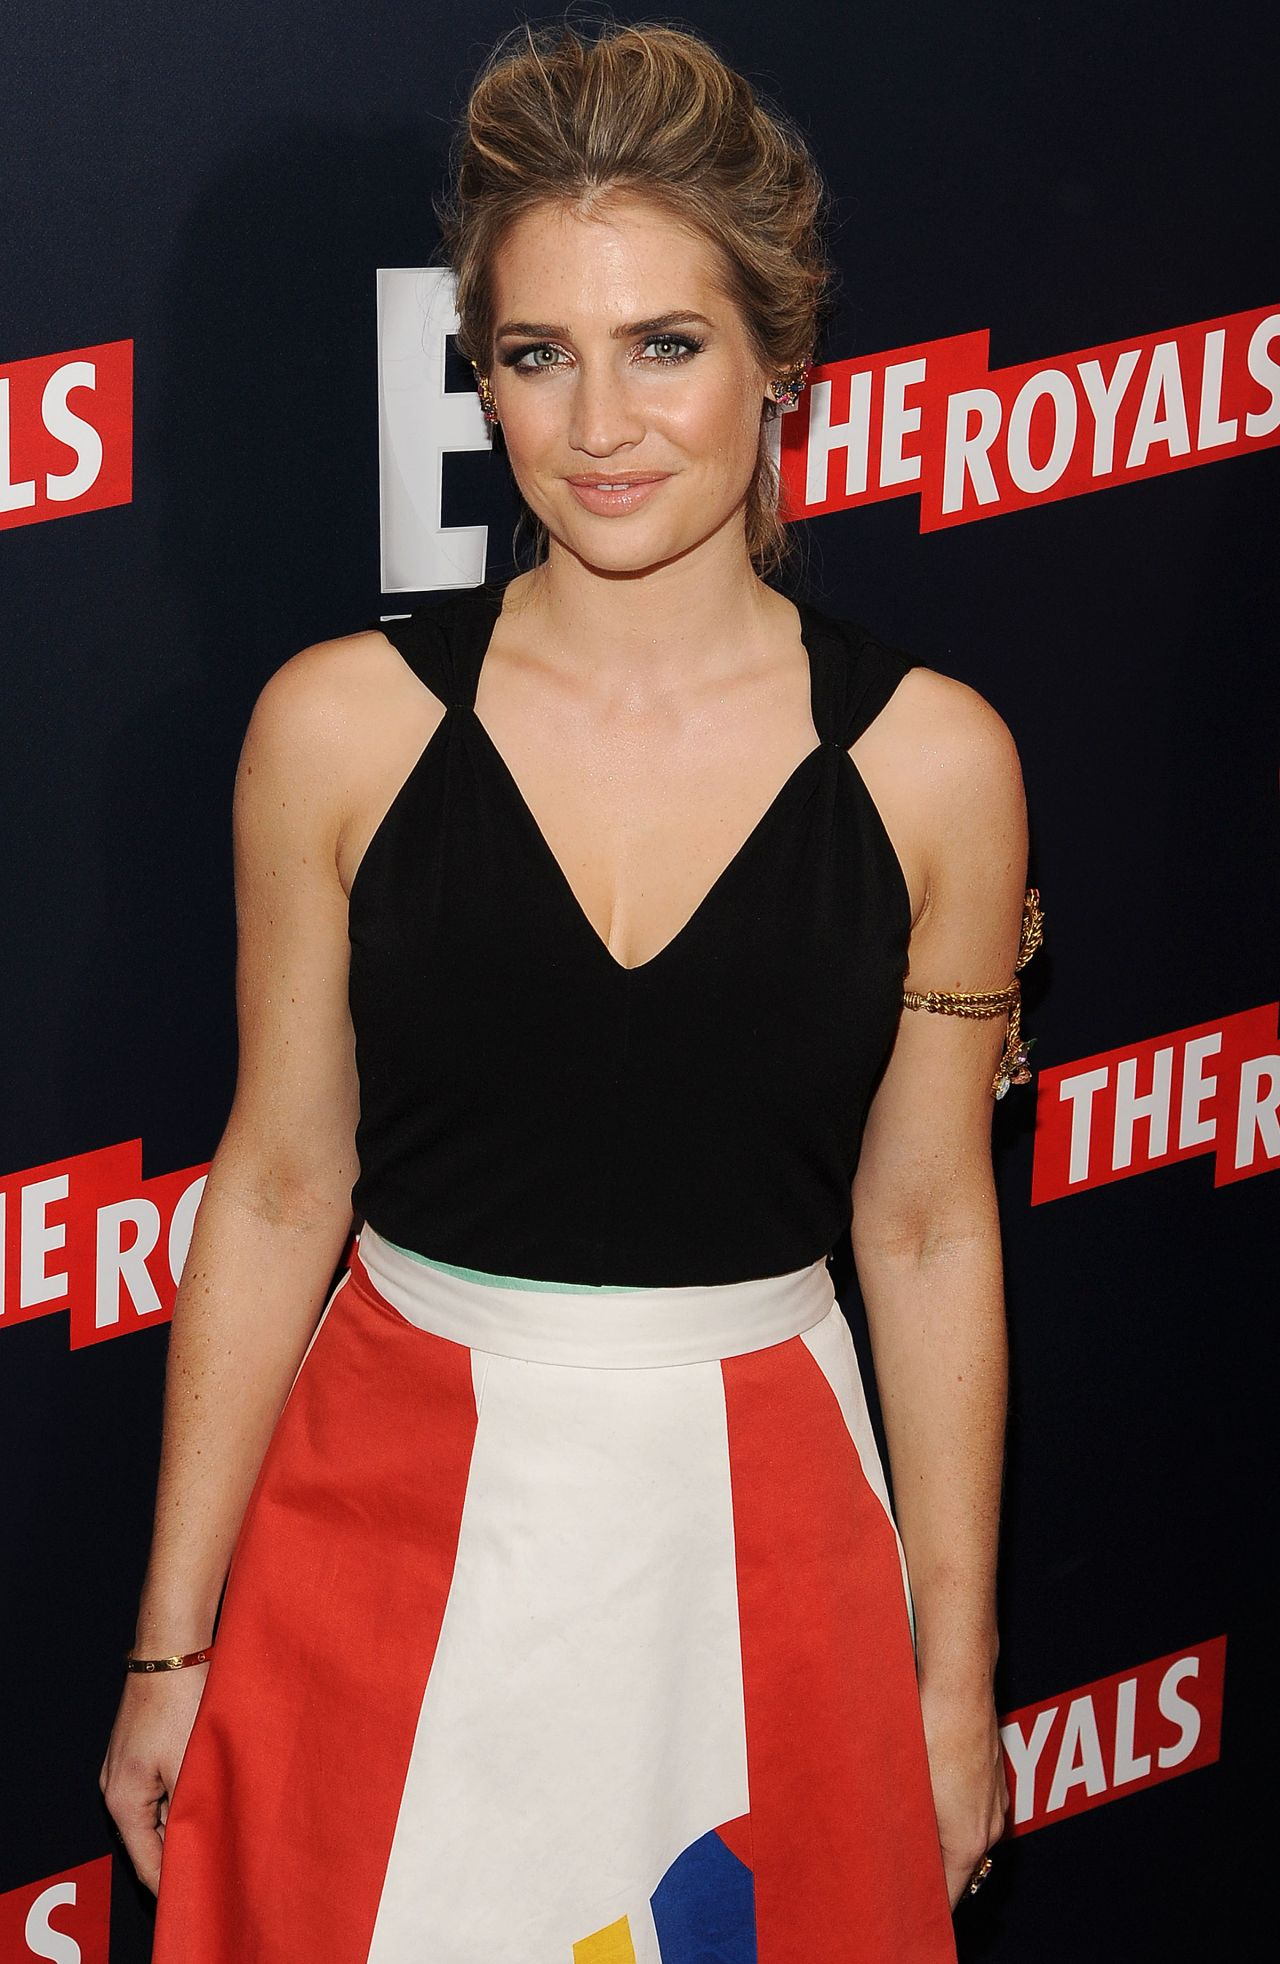 Sophie Colquhoun - 'The Royals' New York Series Premiere, March 2015